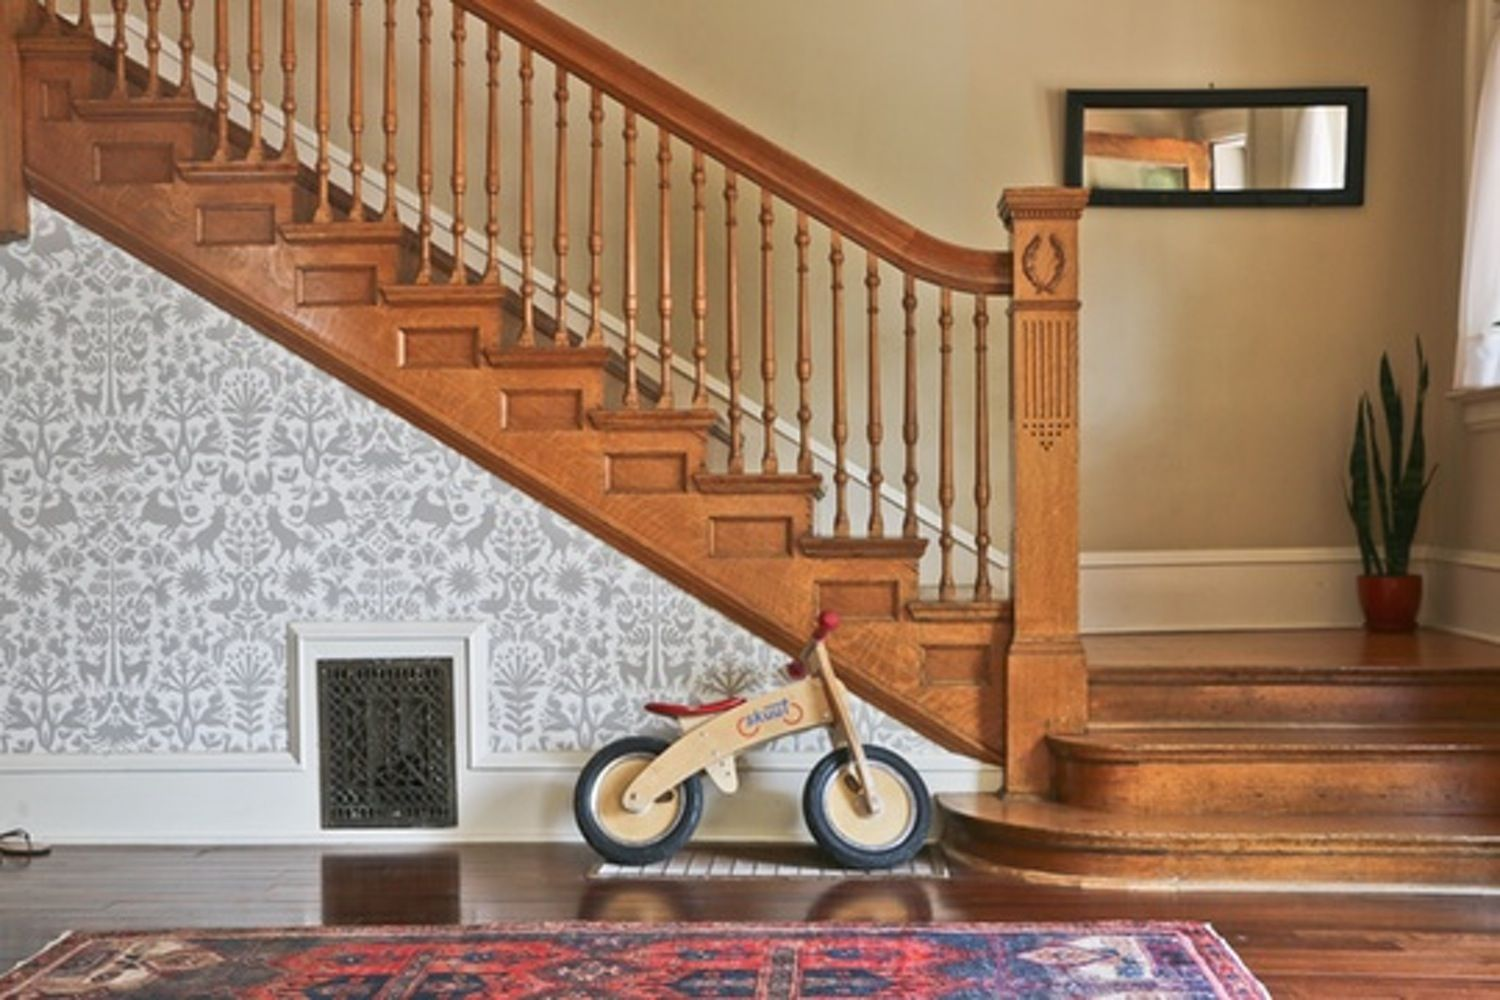 Batya's Modern Classic Entryway — Energize Your Entryway Contest